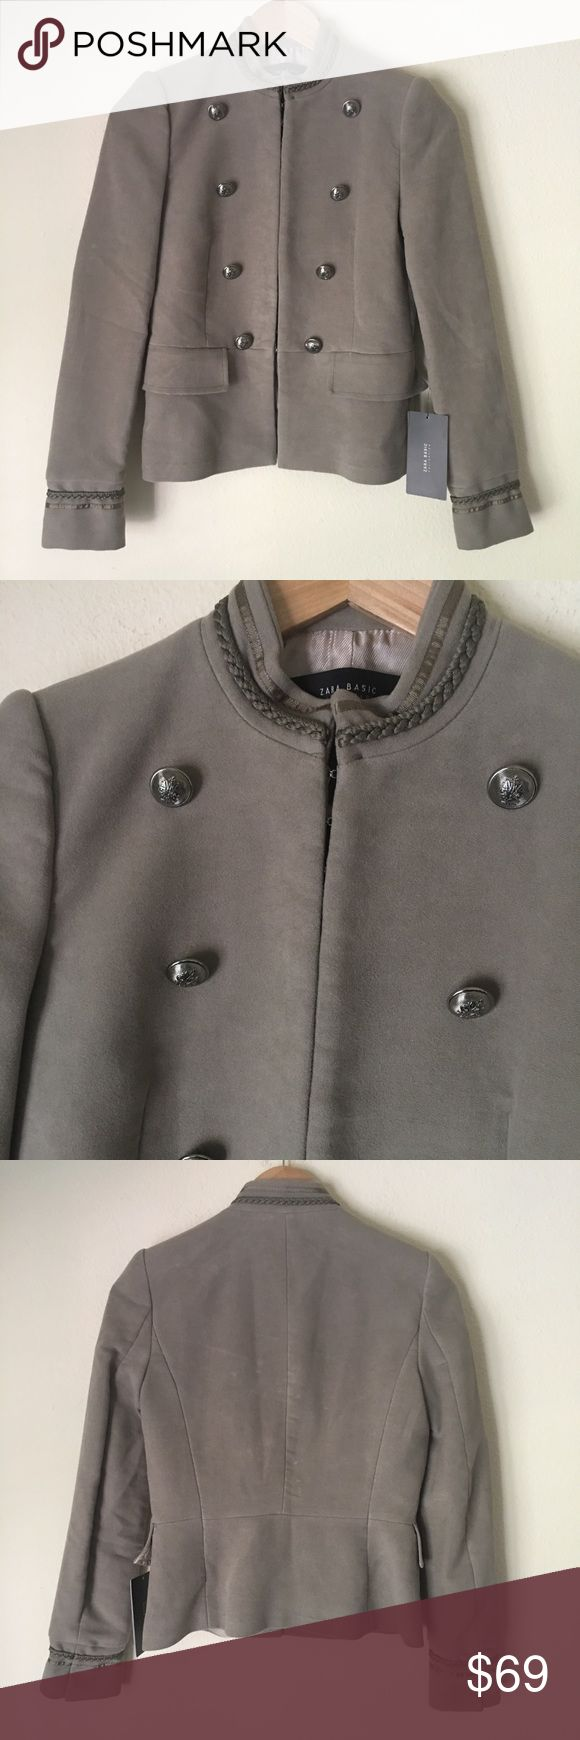 Zara Military Style Coat XS NWT Zara Coat. Grey/cement color. Silver ornate buttons. Hooks to close the jacket: Zara Jackets & Coats Blazers